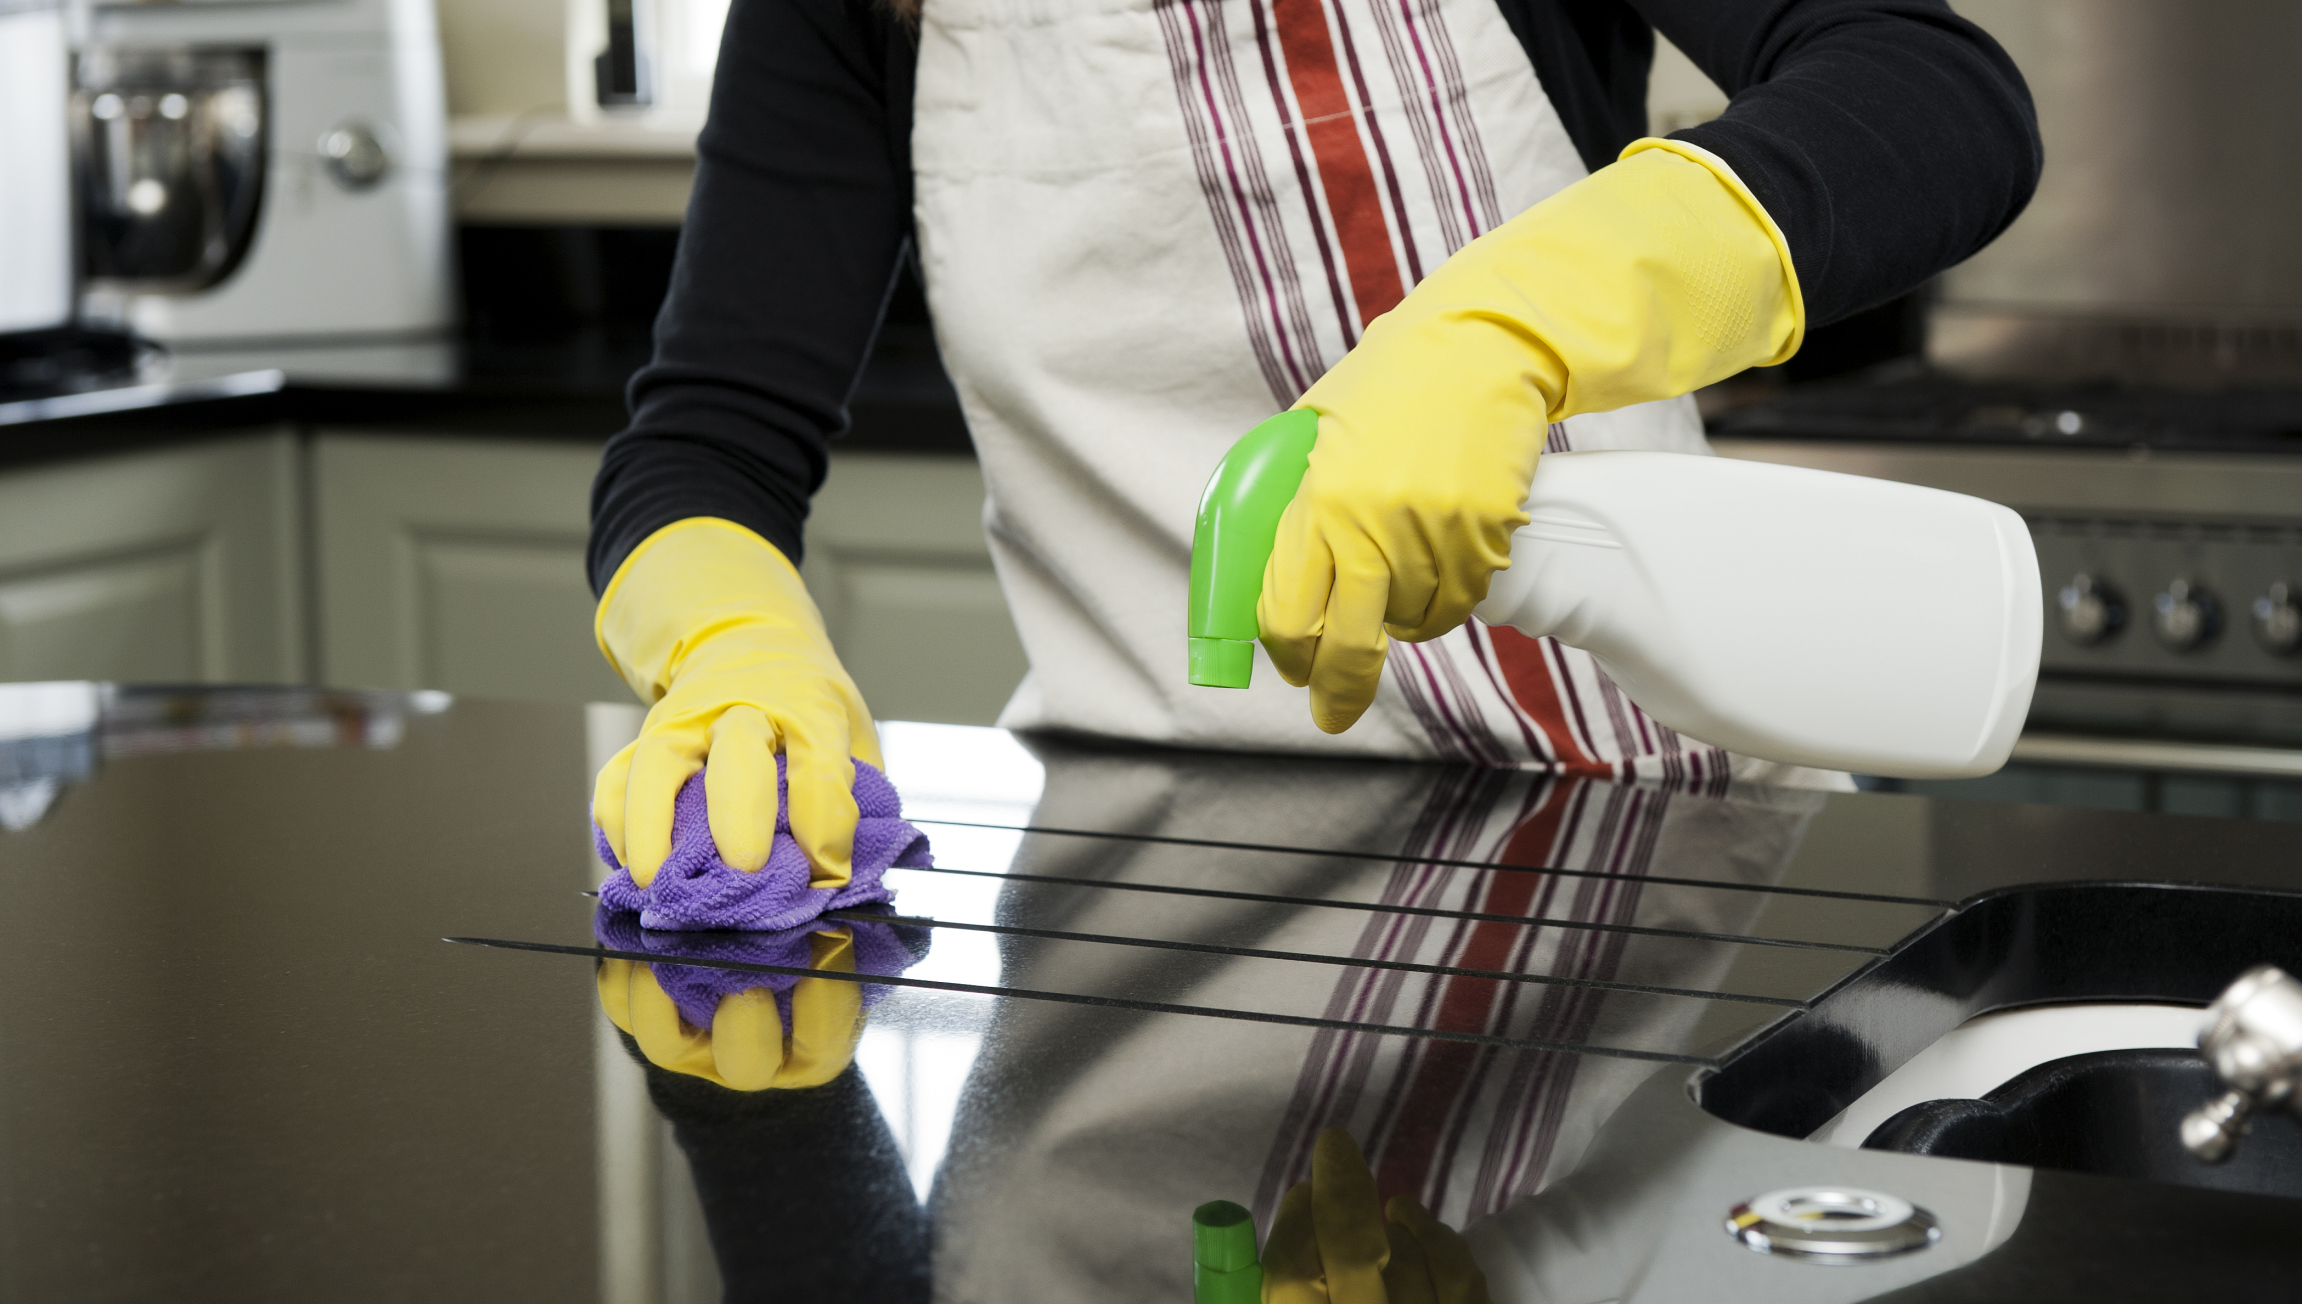 kitchen cleaning services remodel on a budget how does the cleanliness of your home affect